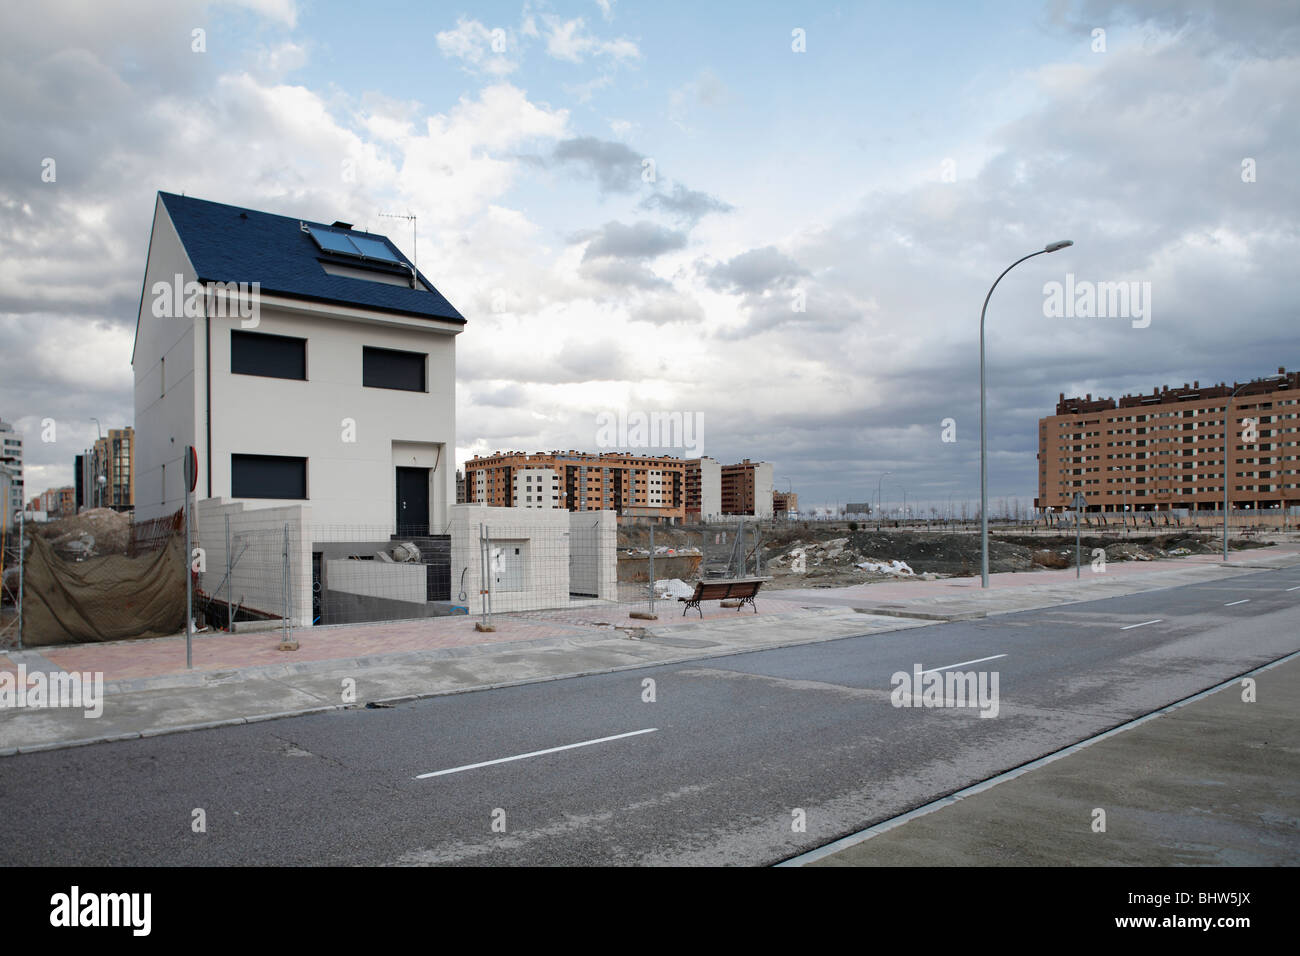 Unsold house stands amidst unoccupied new blocks of flats on the outskirts of Madrid. - Stock Image